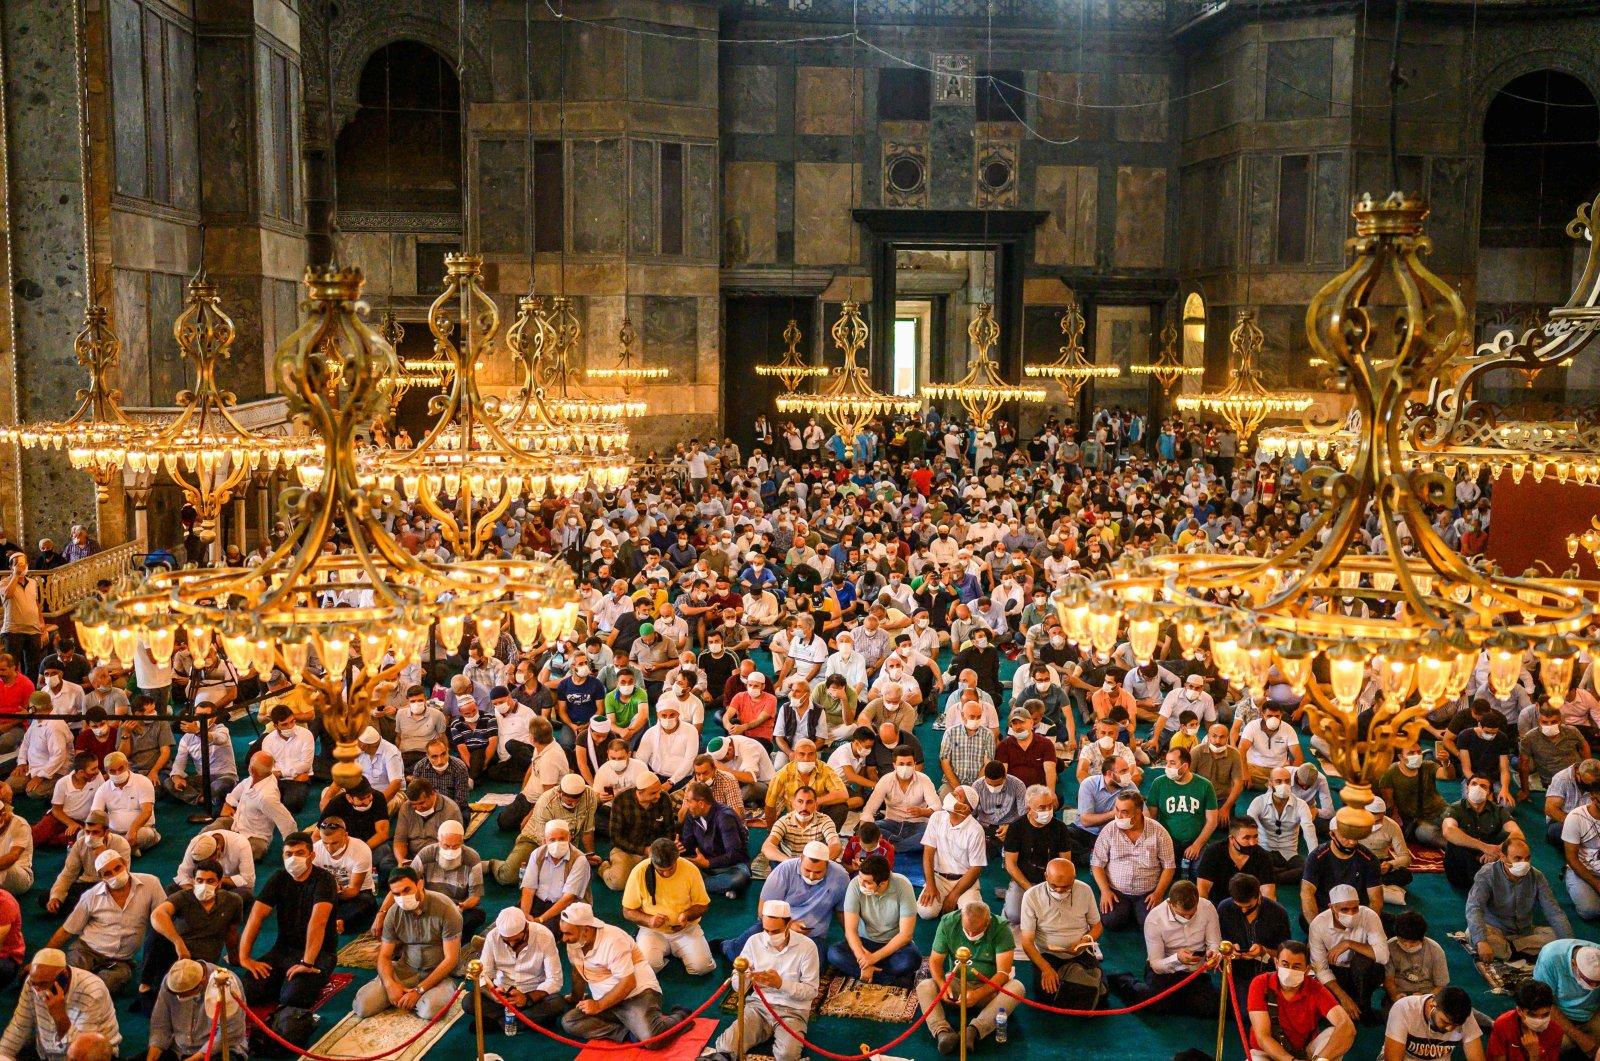 Worshippers pray in Hagia Sophia Grand Mosque in Istanbul, Turkey, July 26, 2020. (AFP Photo)